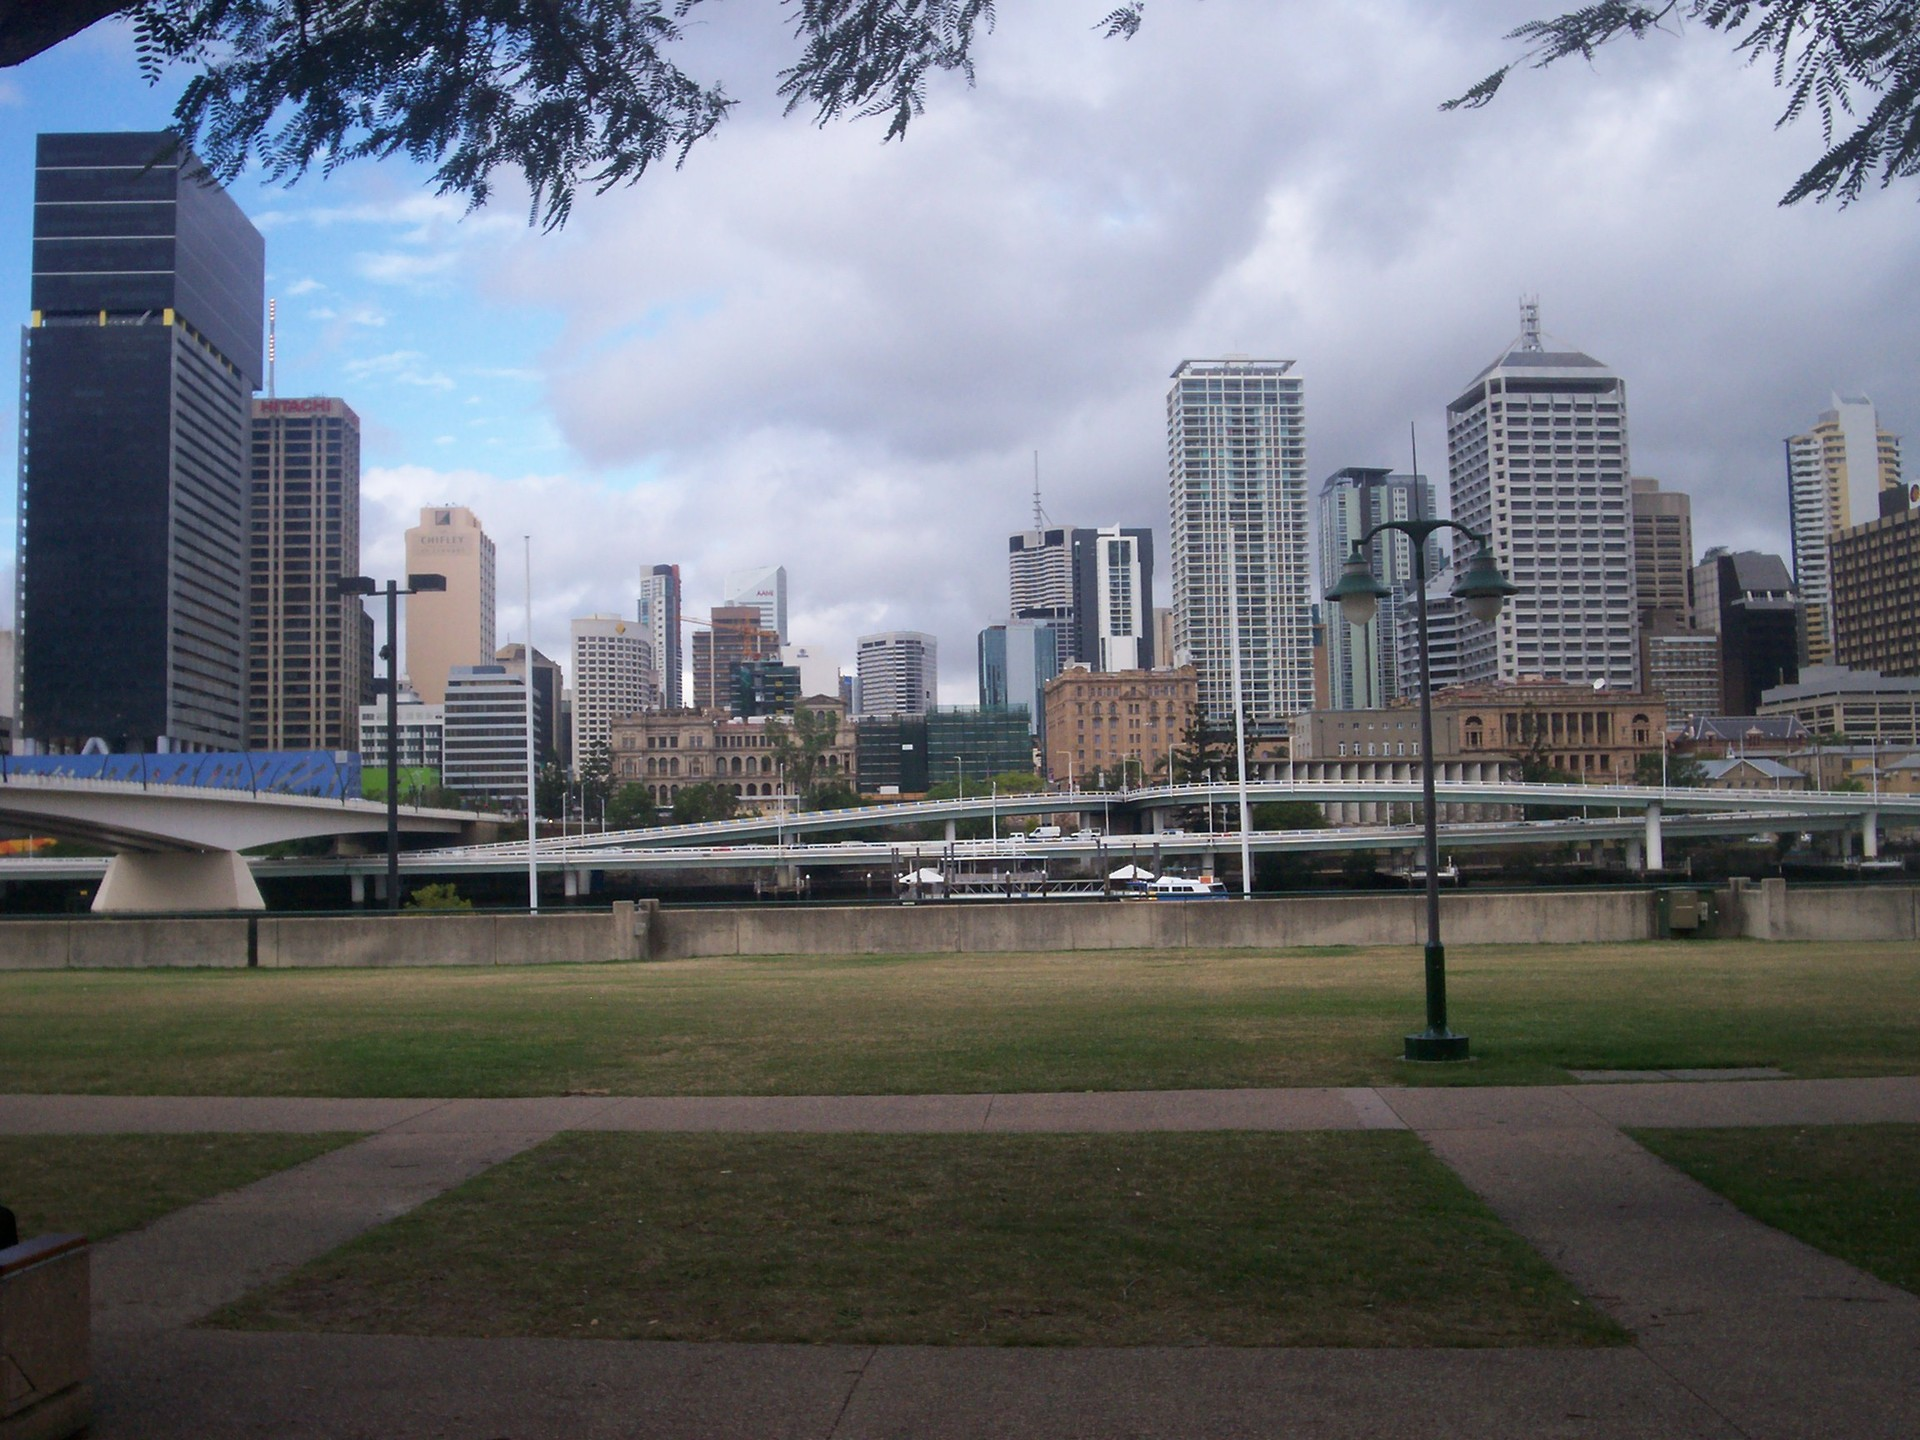 australia brisbane queensland - photo #46